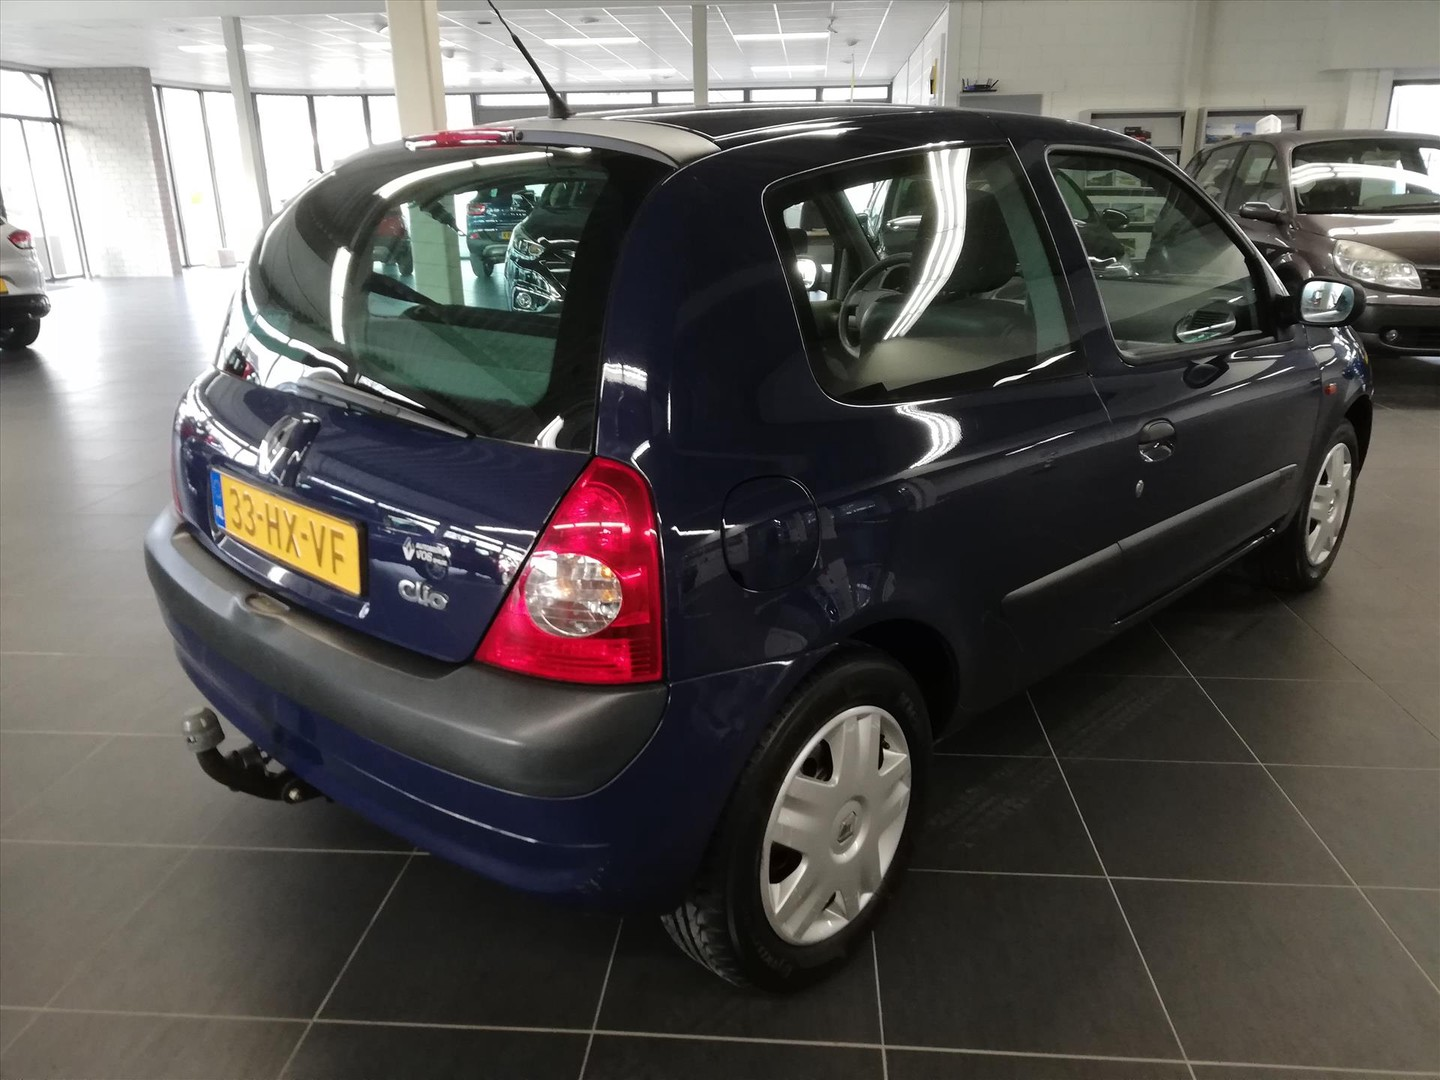 Renault Clio 1.2 55kw e3 authentique